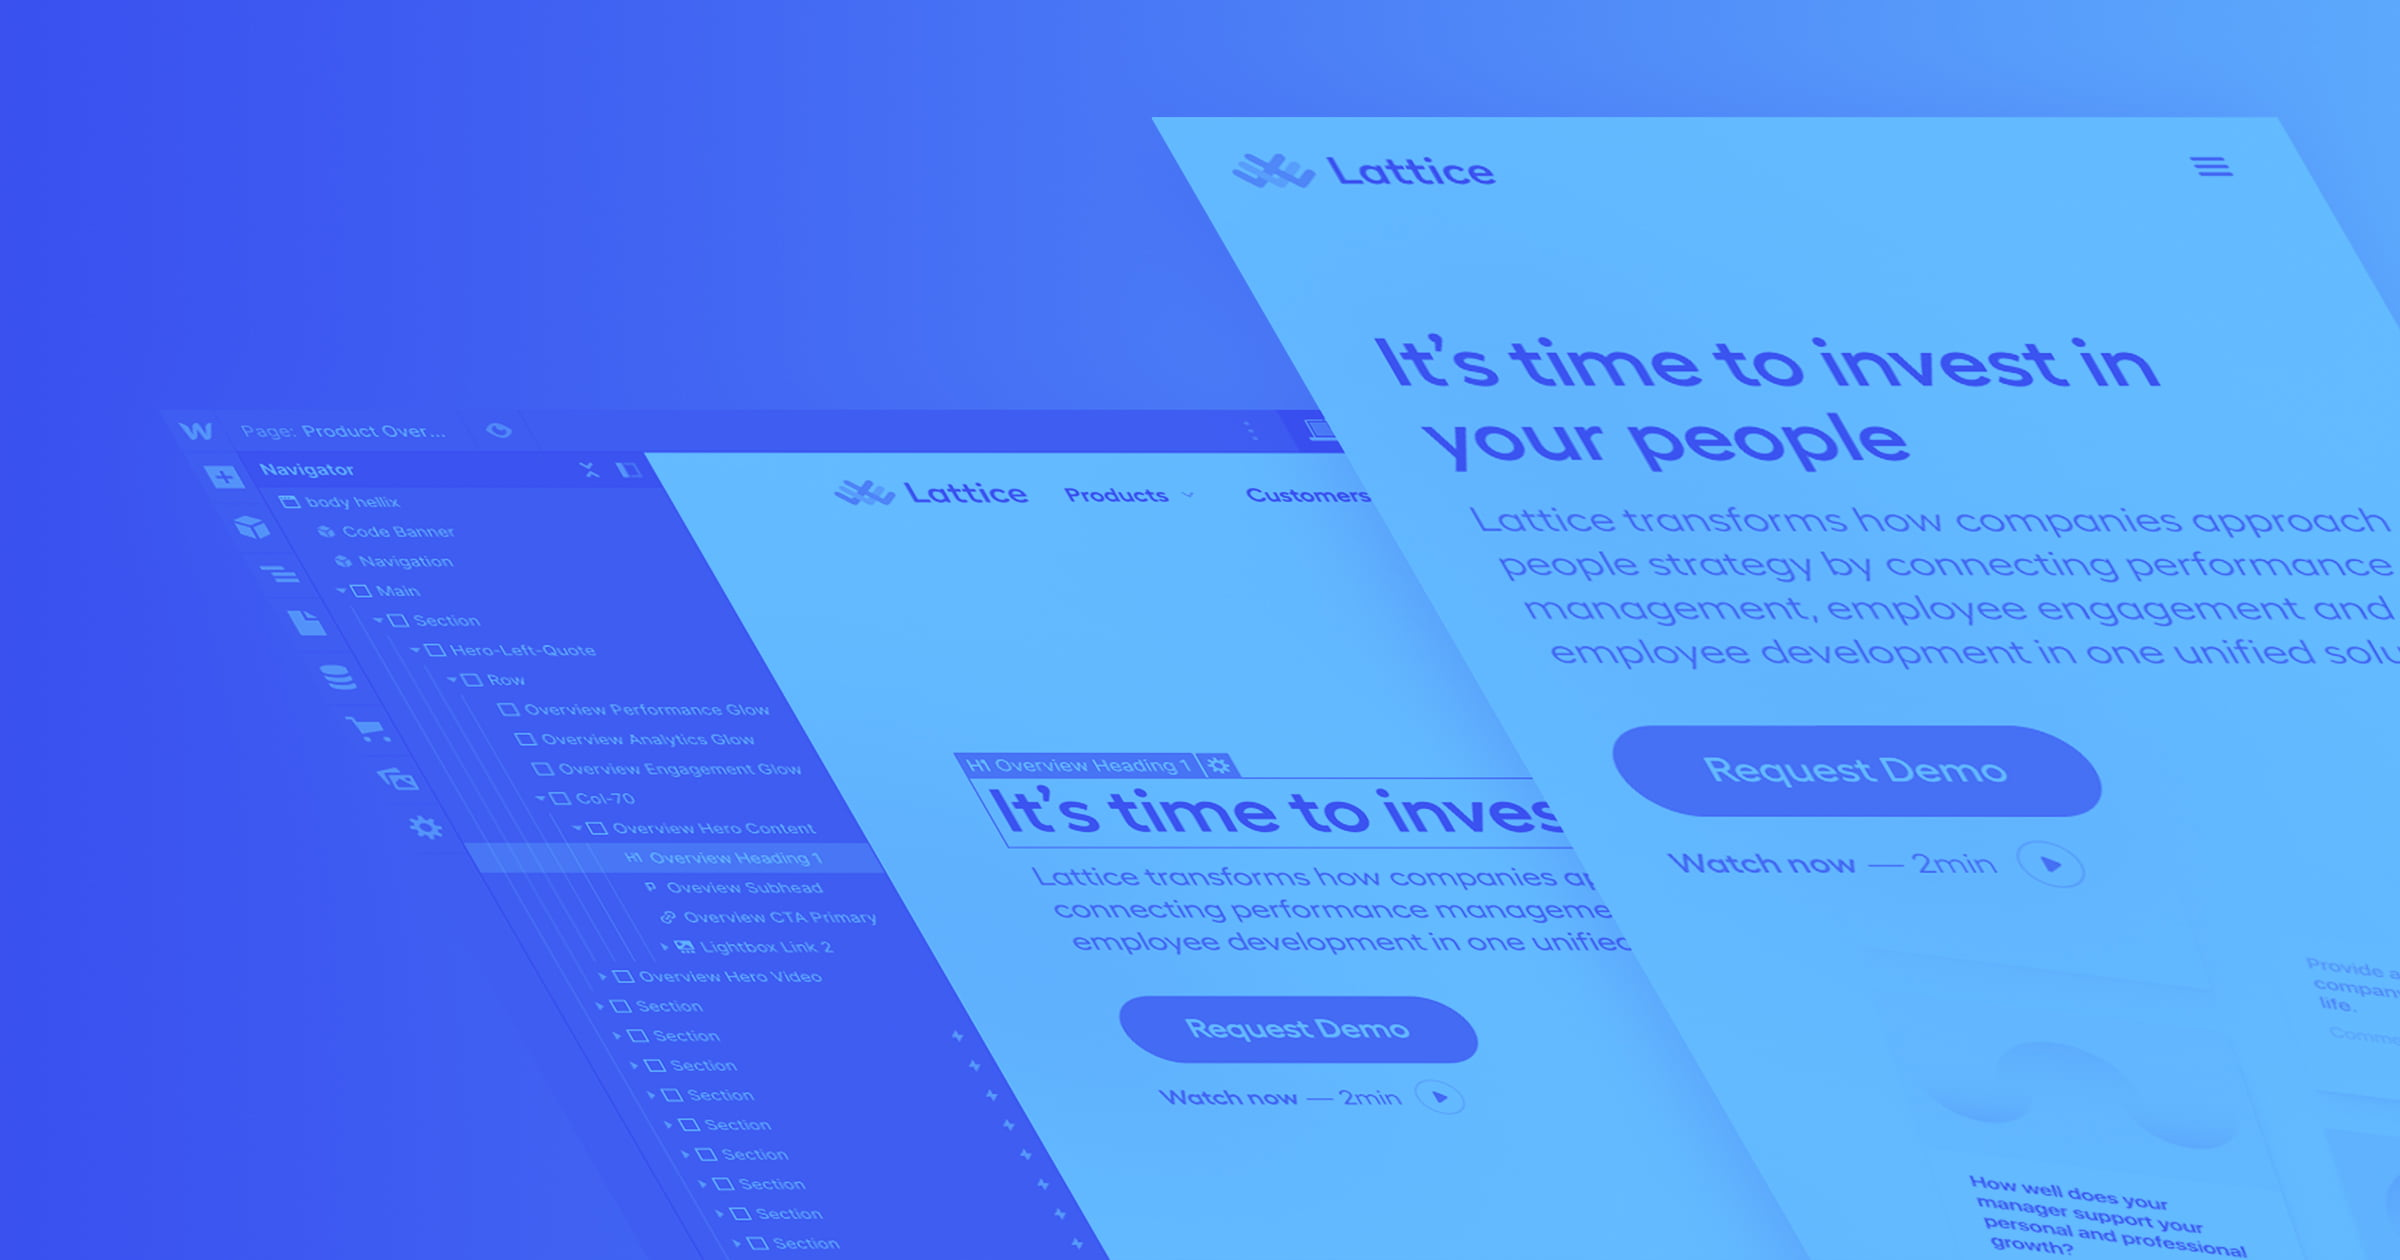 Introducing Webflow for Startups